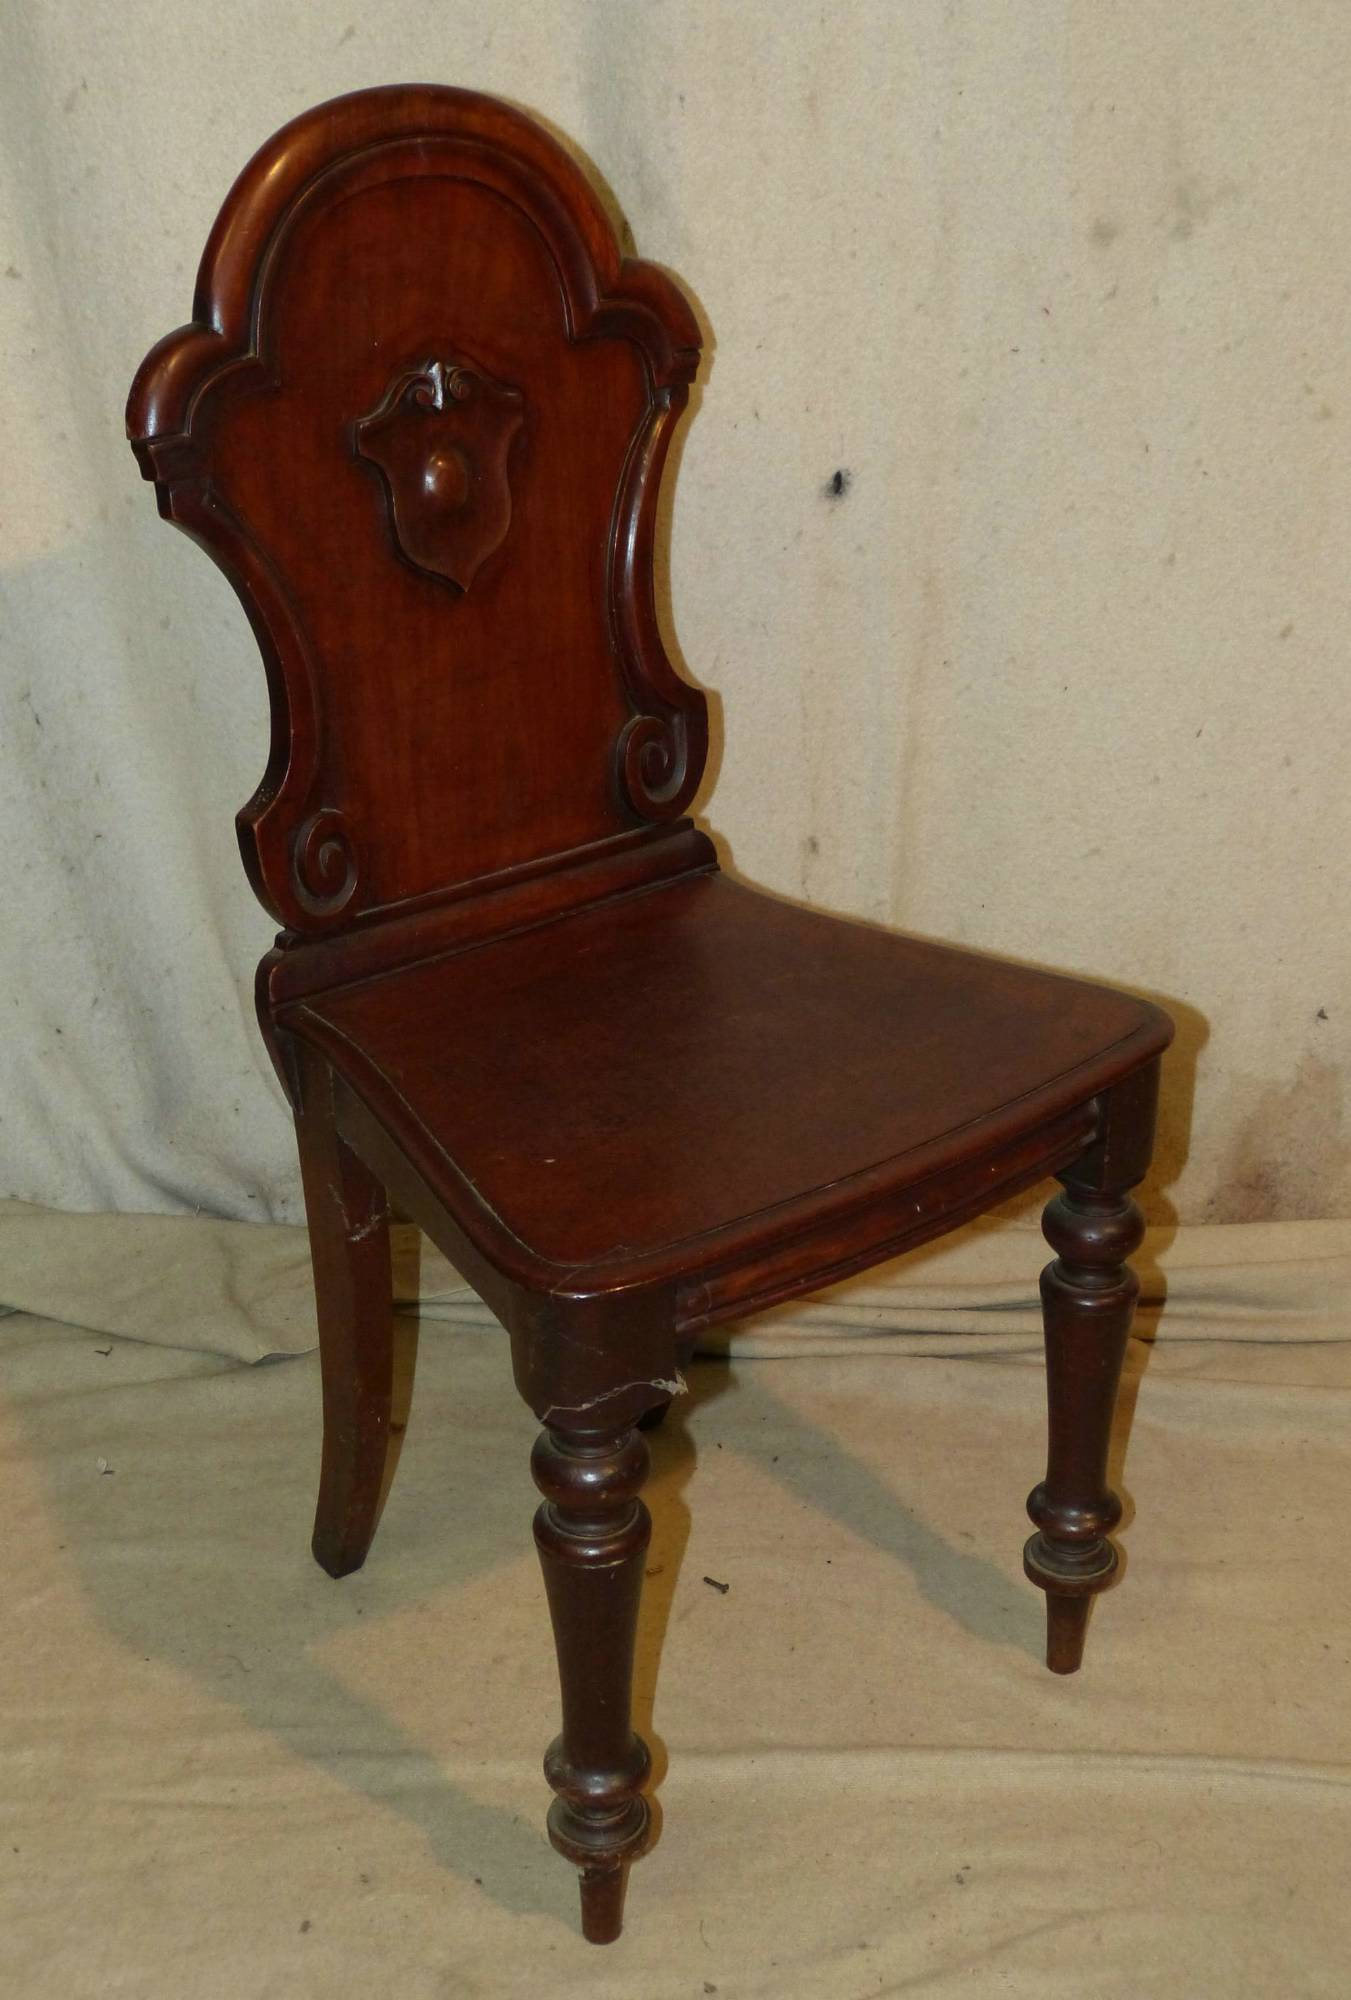 Merveilleux A 19th Century Mahogany Shield Back Hall Chair Having Solid Seat On Round  Turned Legs From P.F. Windibank .